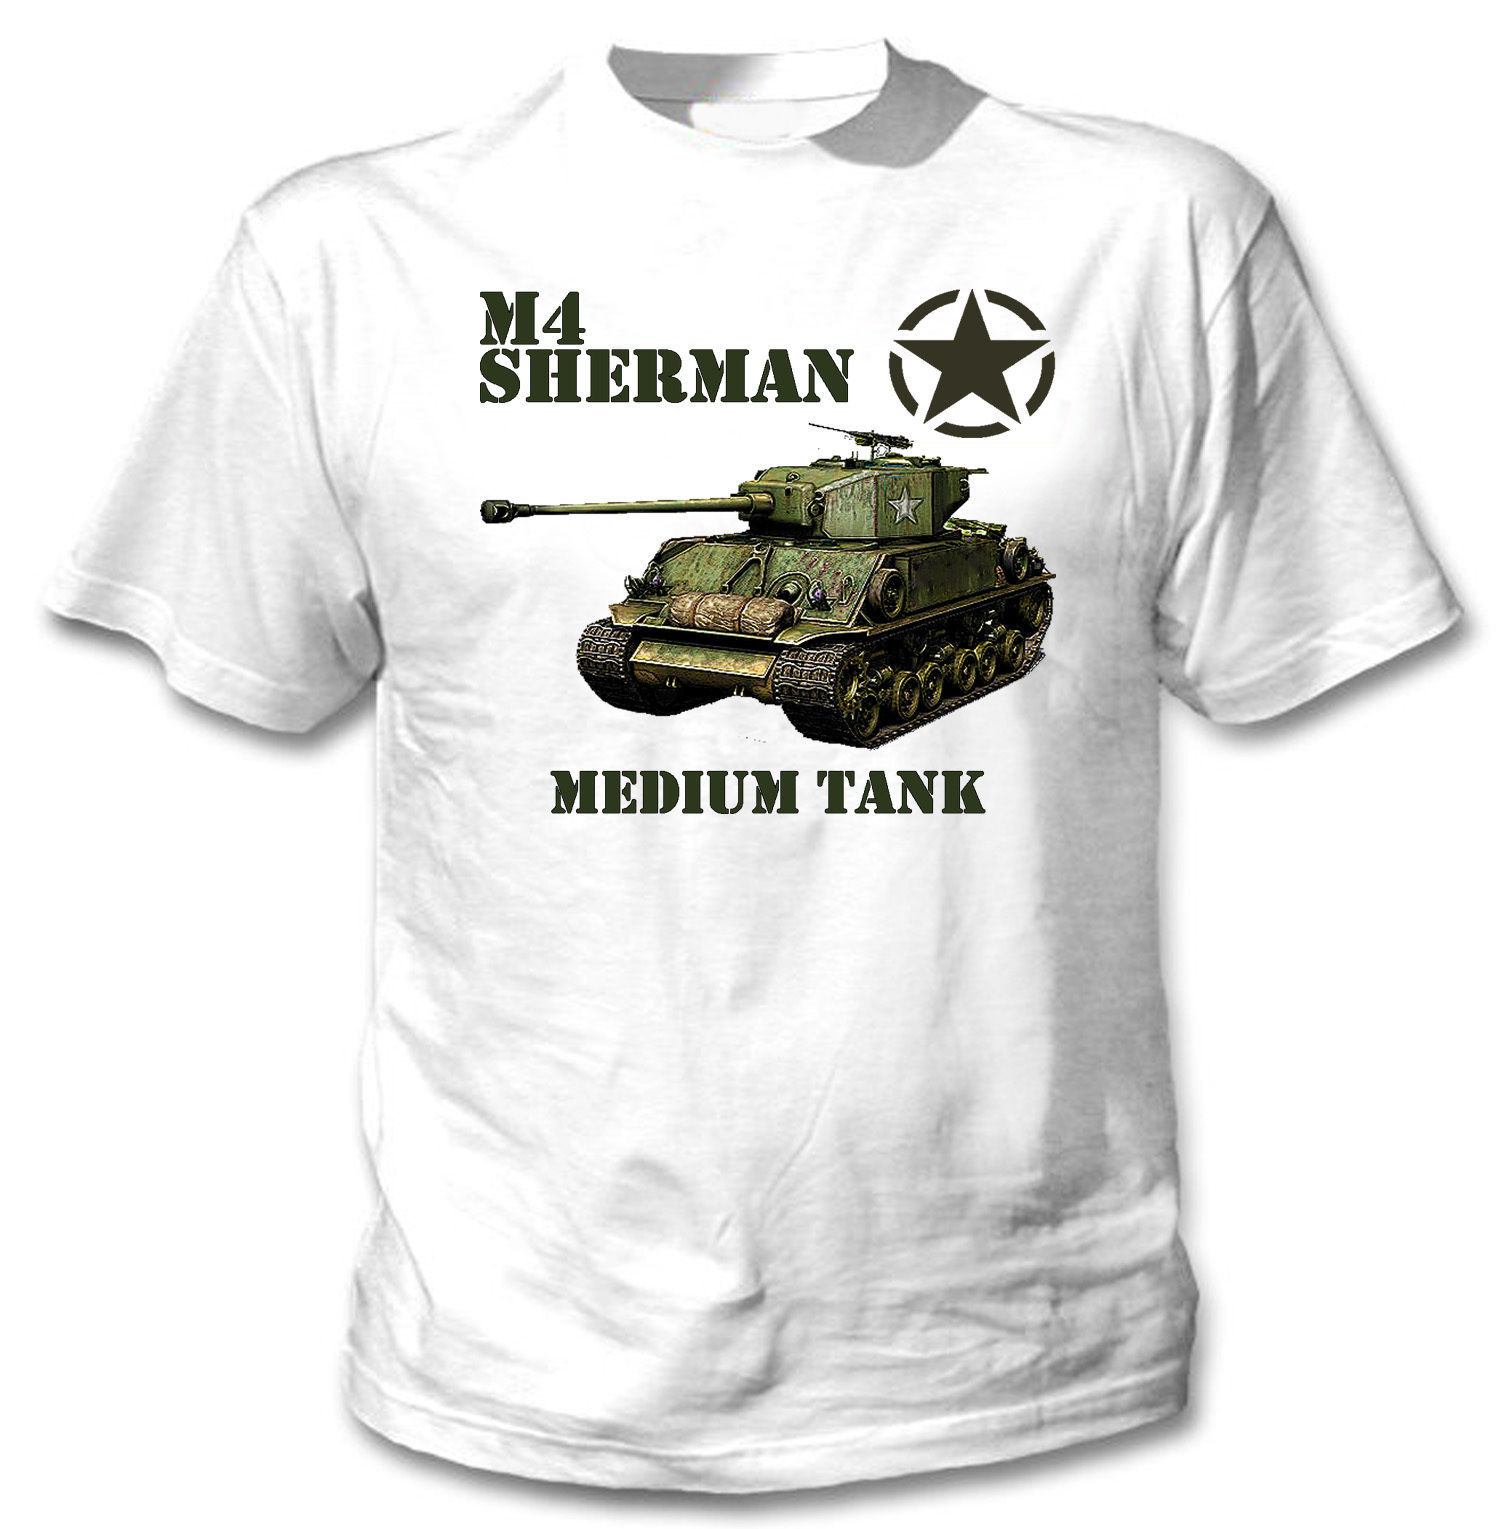 Primary image for M4 SHERMAN MEDIUM TANK - NEW AMAZING GRAPHIC TSHIRT- S-M-L-XL-XXL